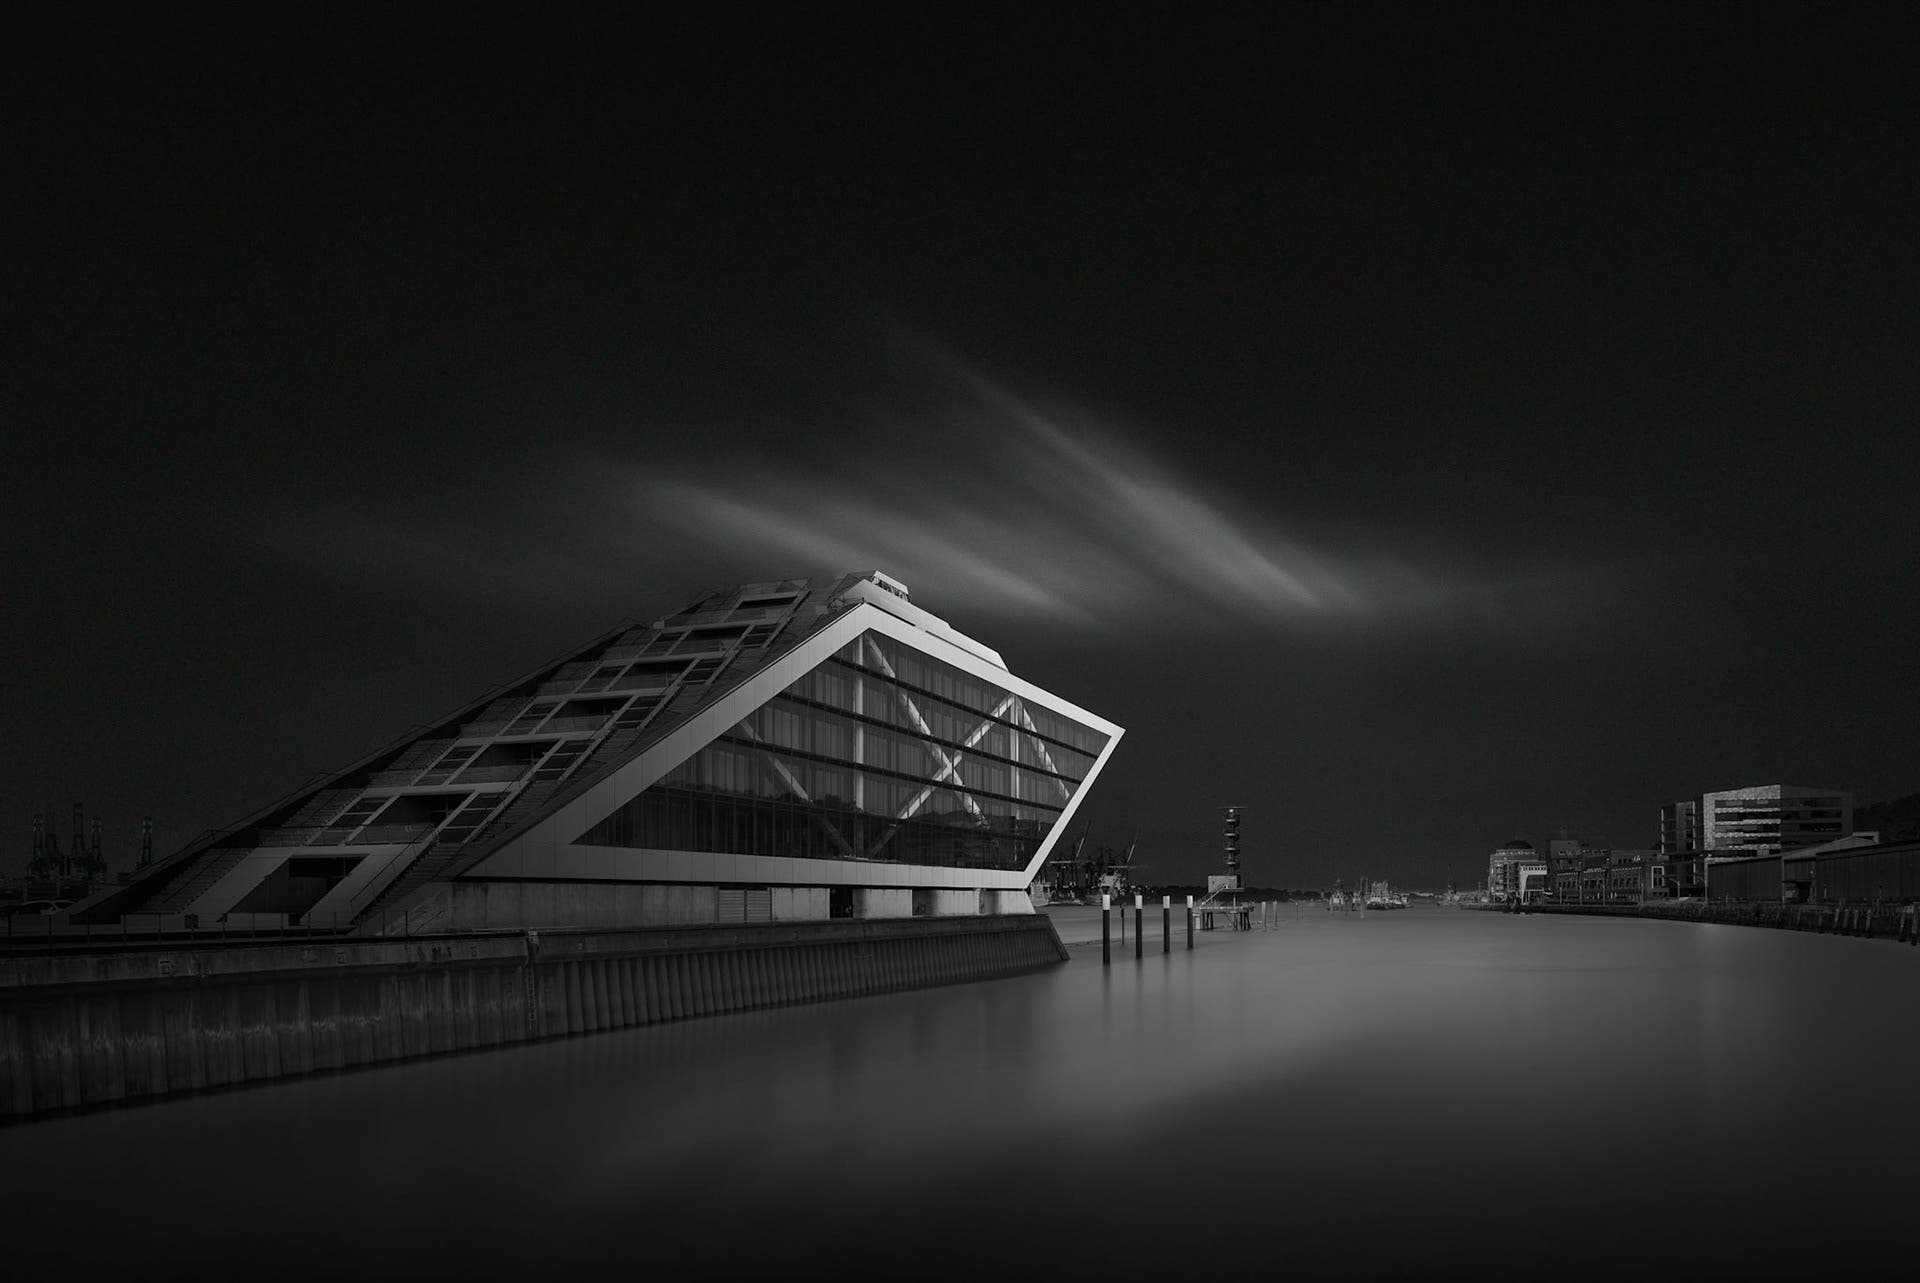 Oscar Lopez's Stunning Black and White Architectural Photography